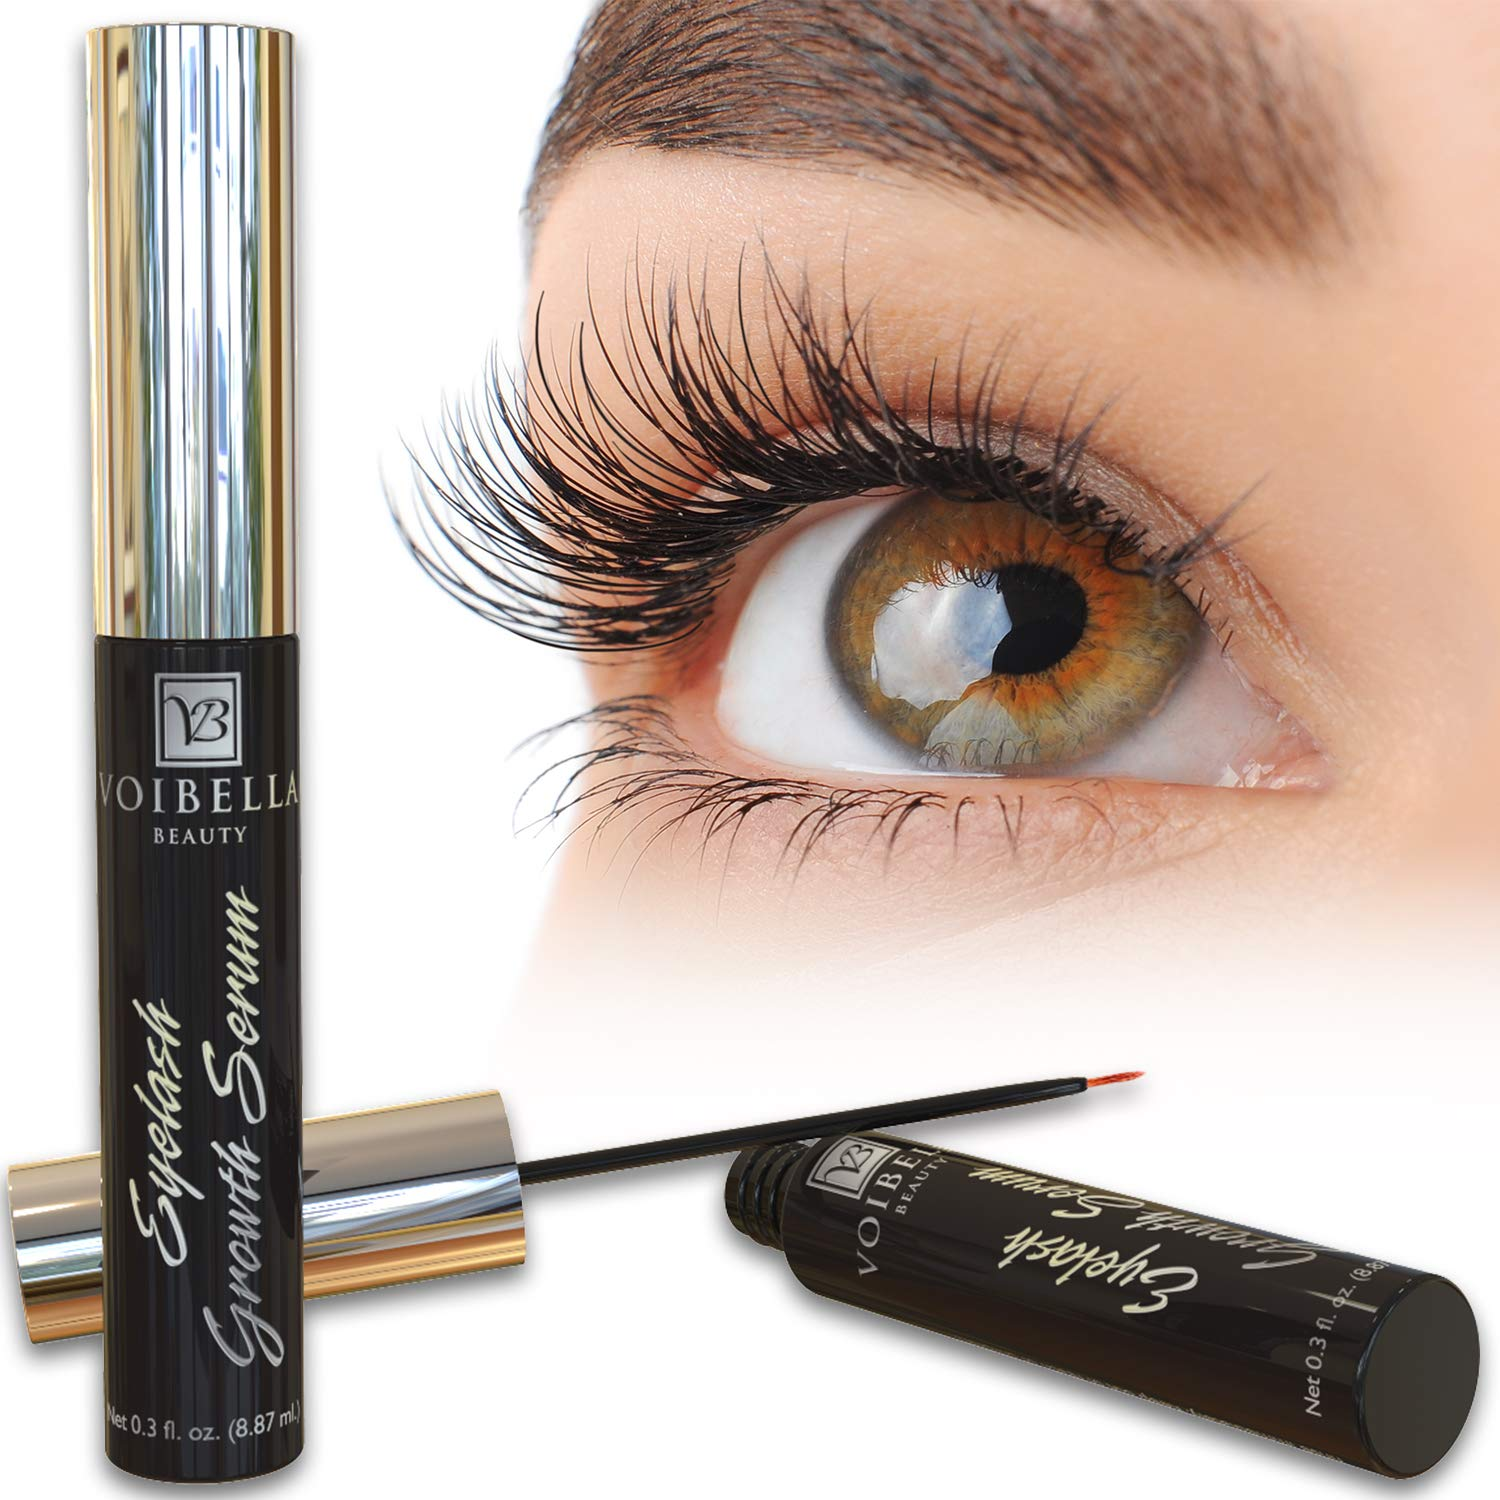 57db39d2908 Voibella Eyelash Growth Serum & Eyebrow Enhancer - Best Natural Eye ...